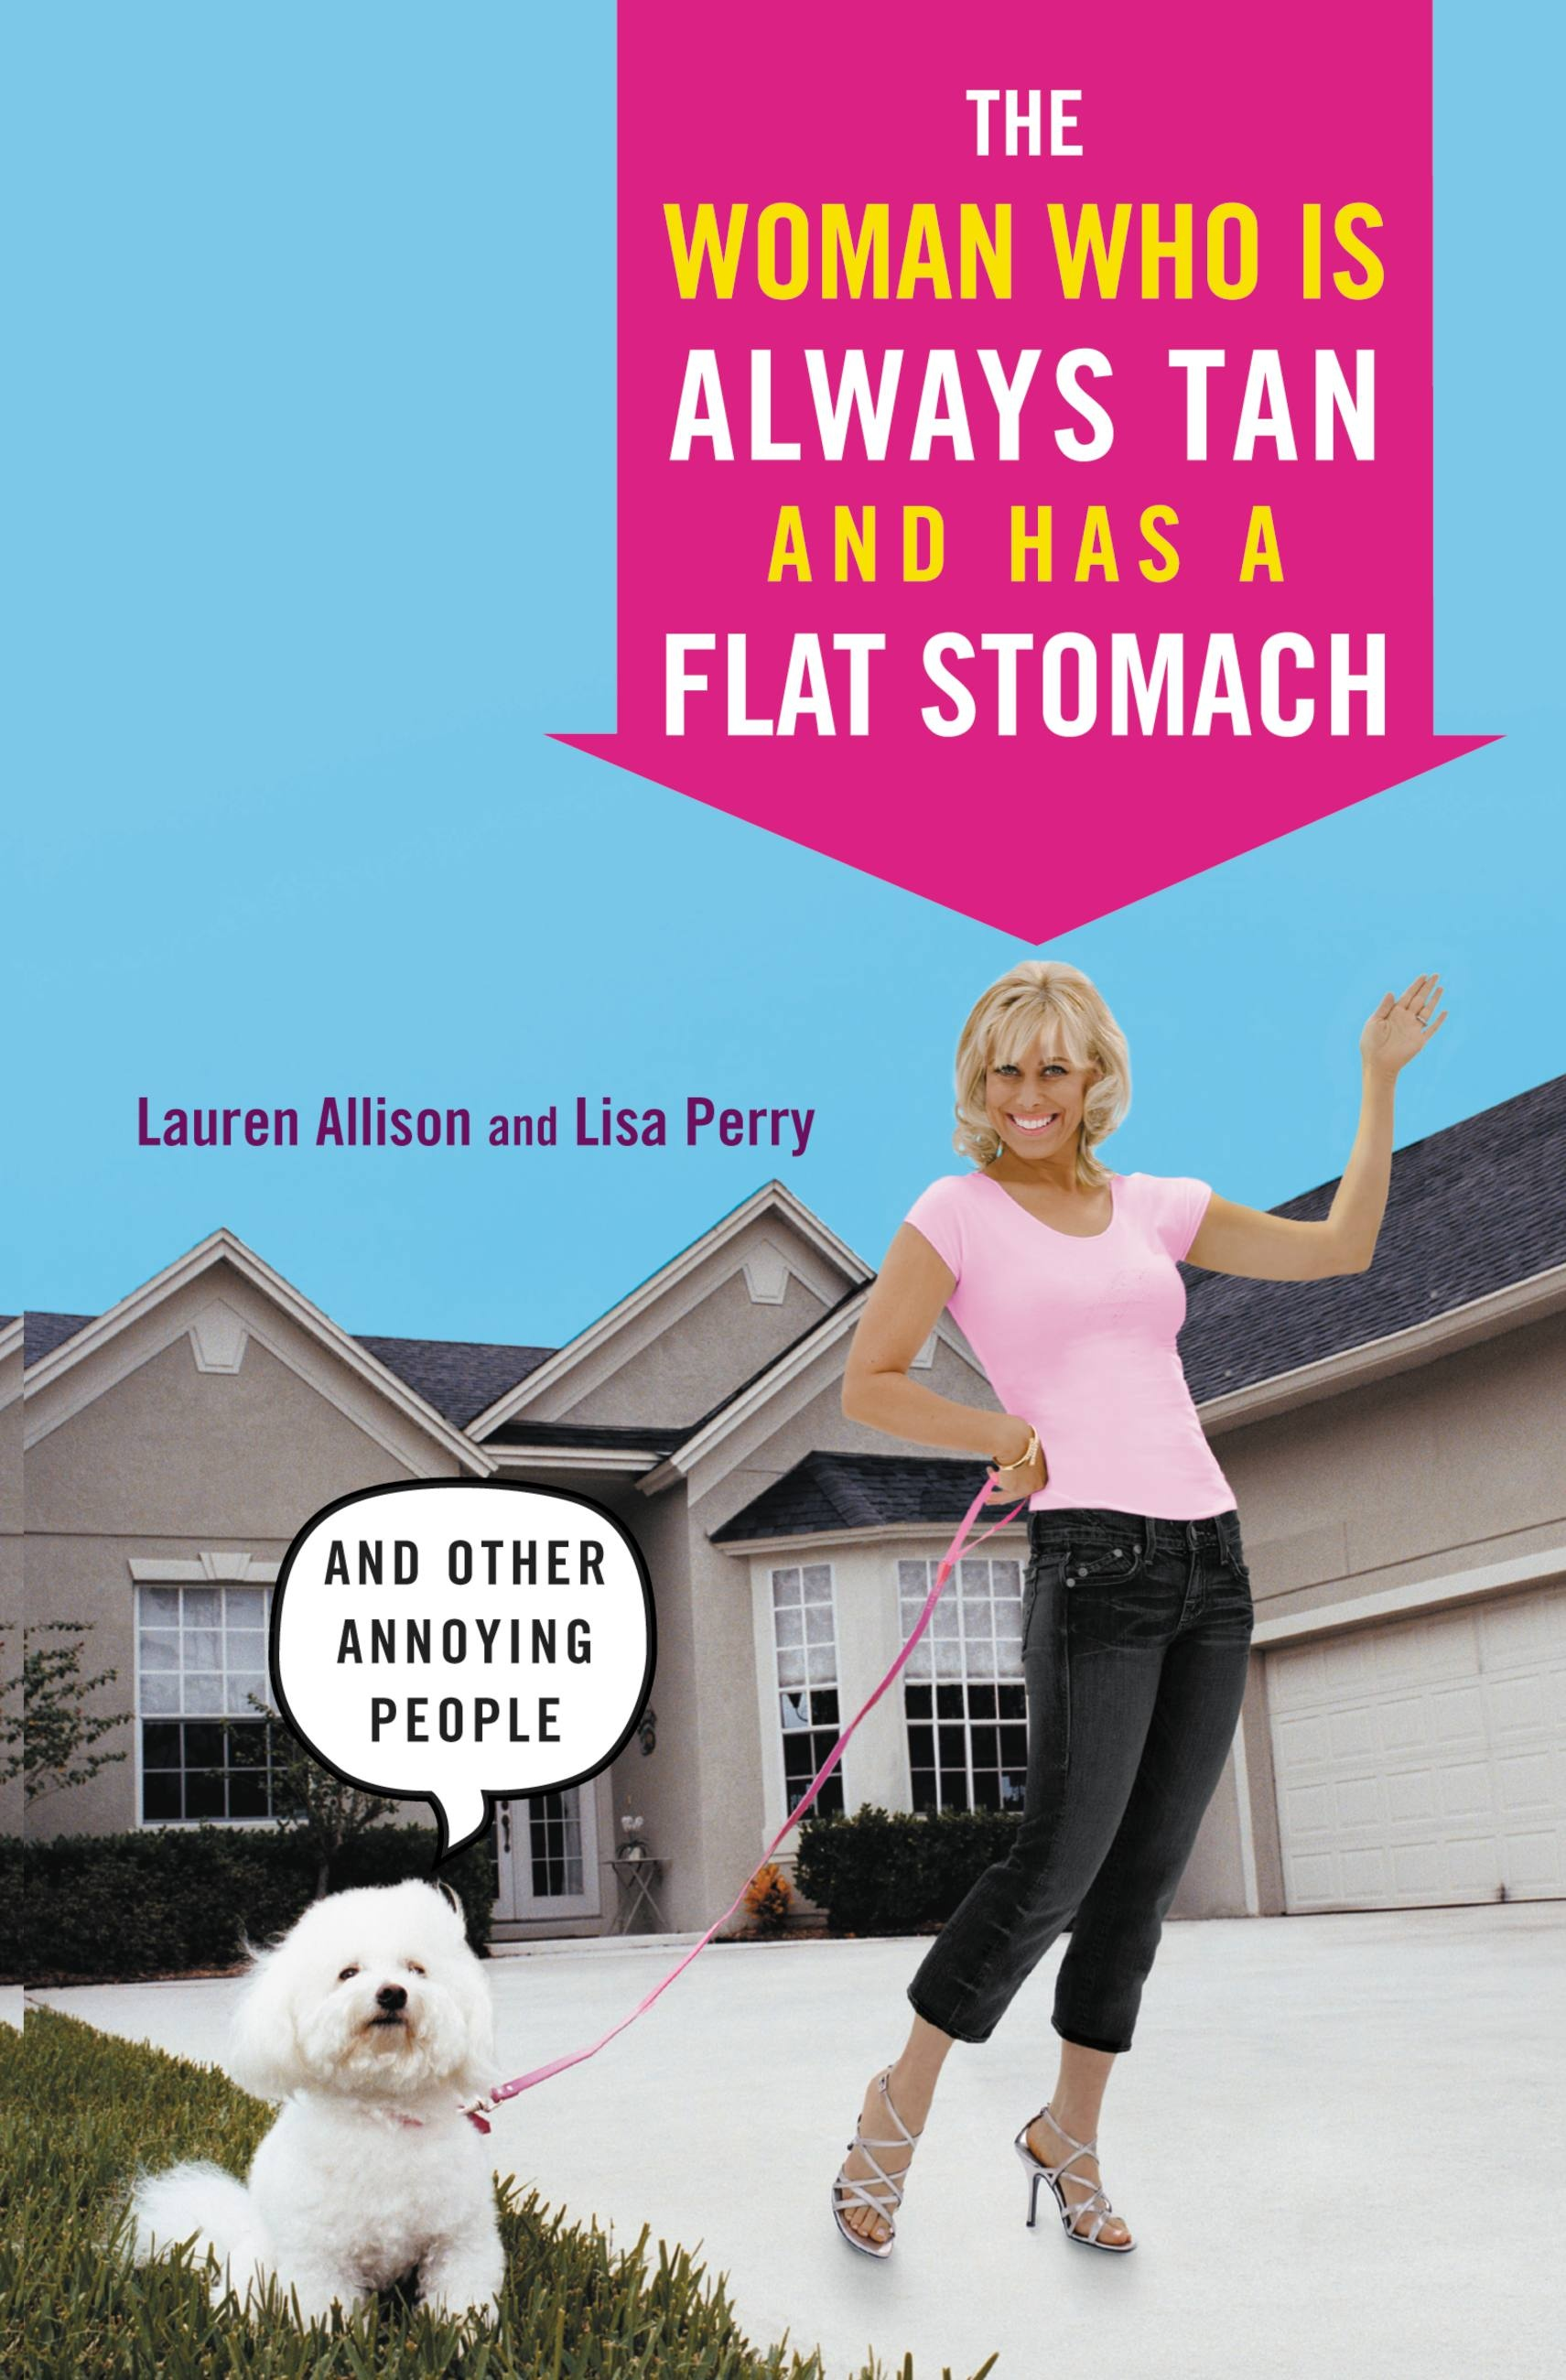 The Woman Who Is Always Tan And Has a Flat Stomach